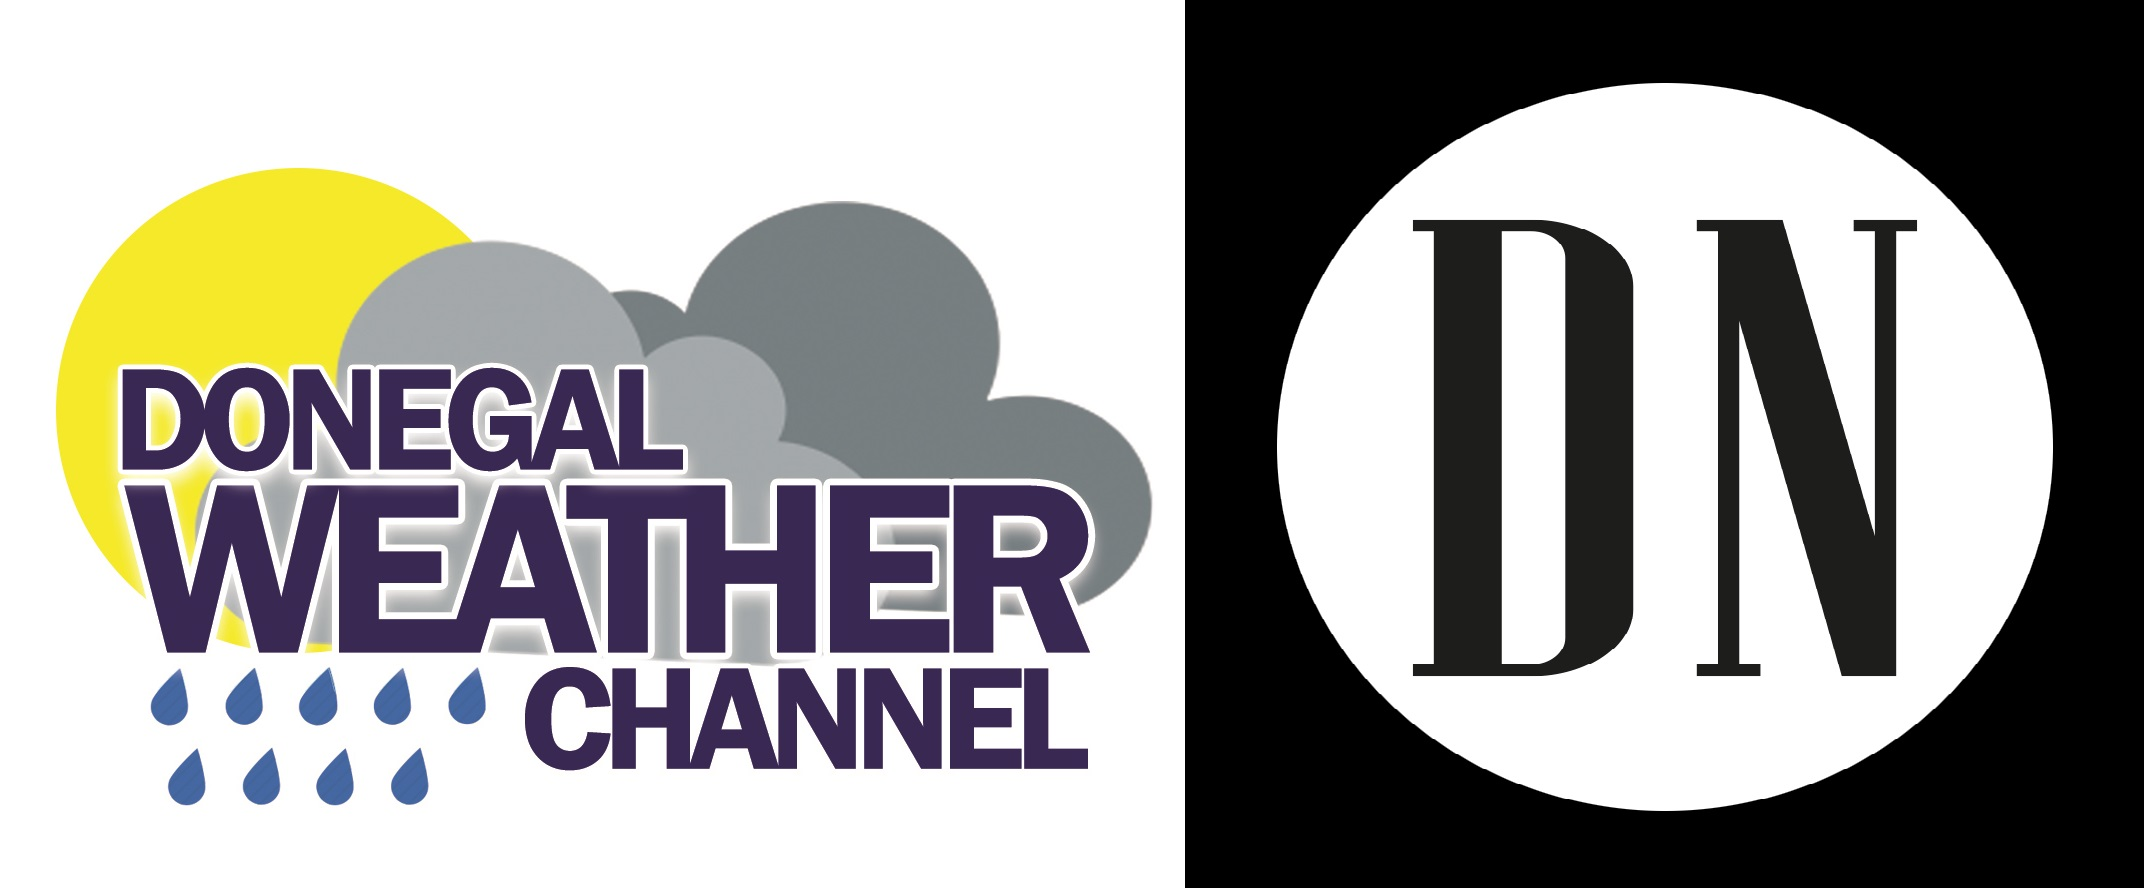 Donegal Weather Channel and Donegal news